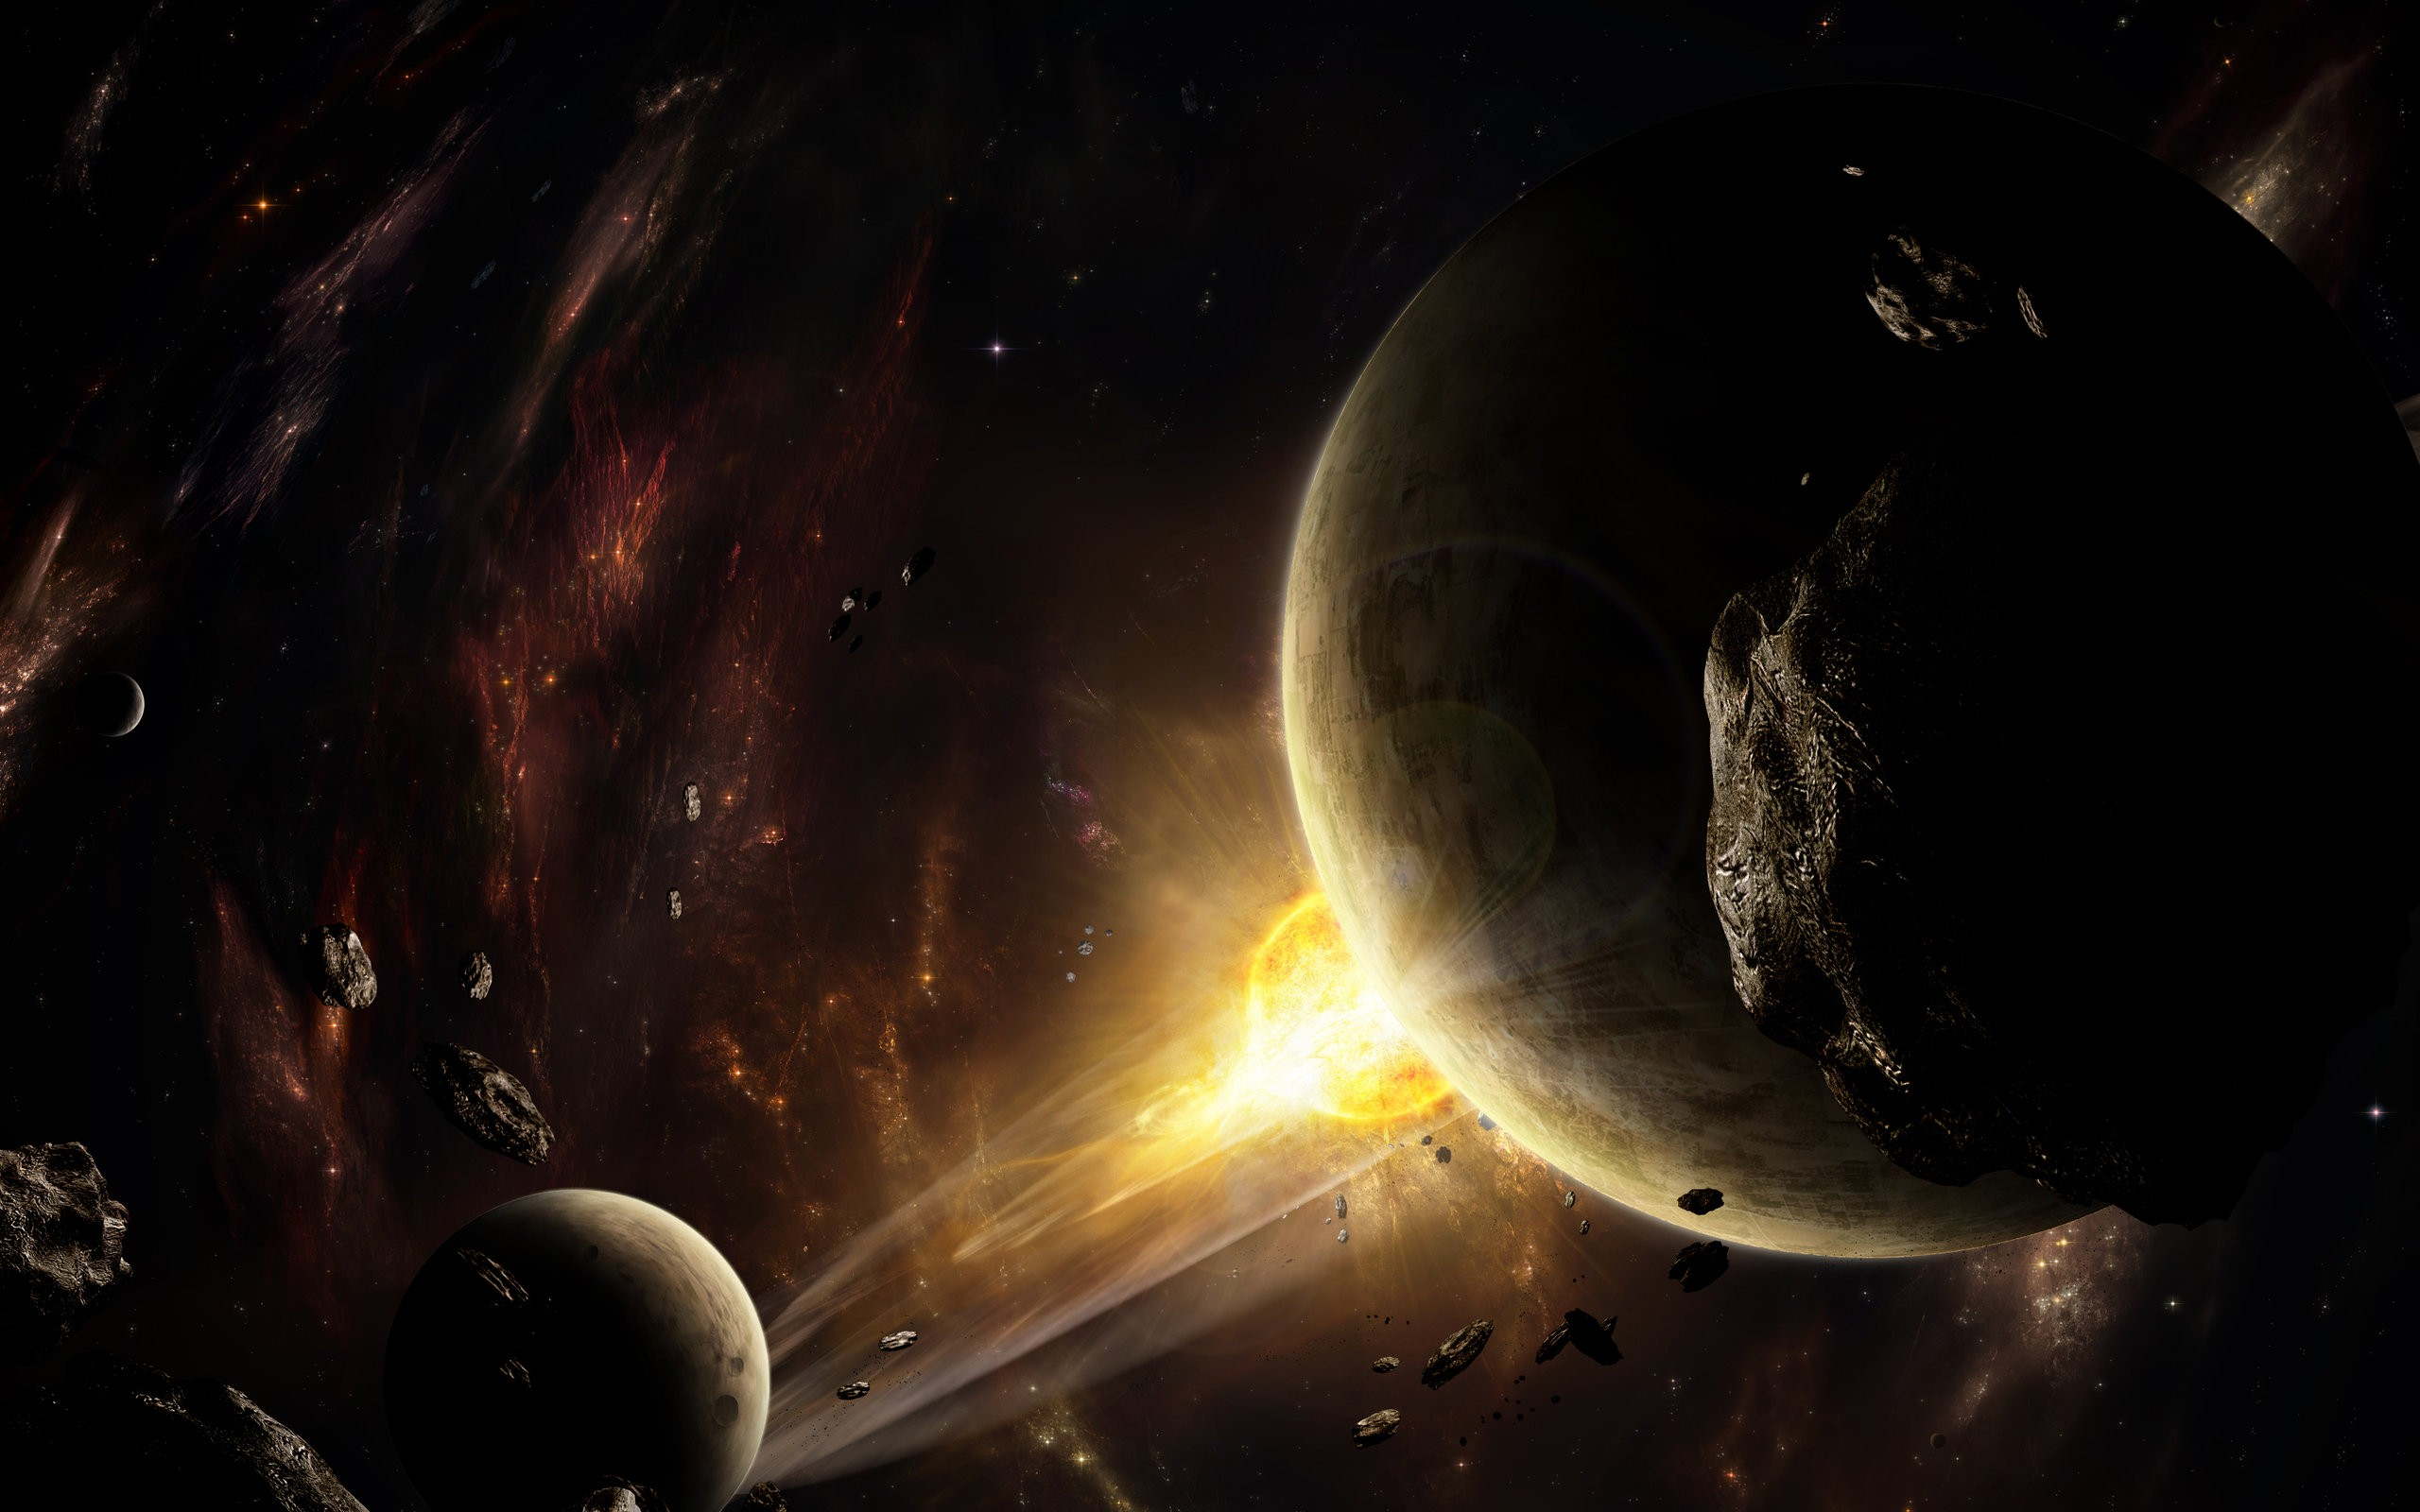 planets asteroids stars - photo #22